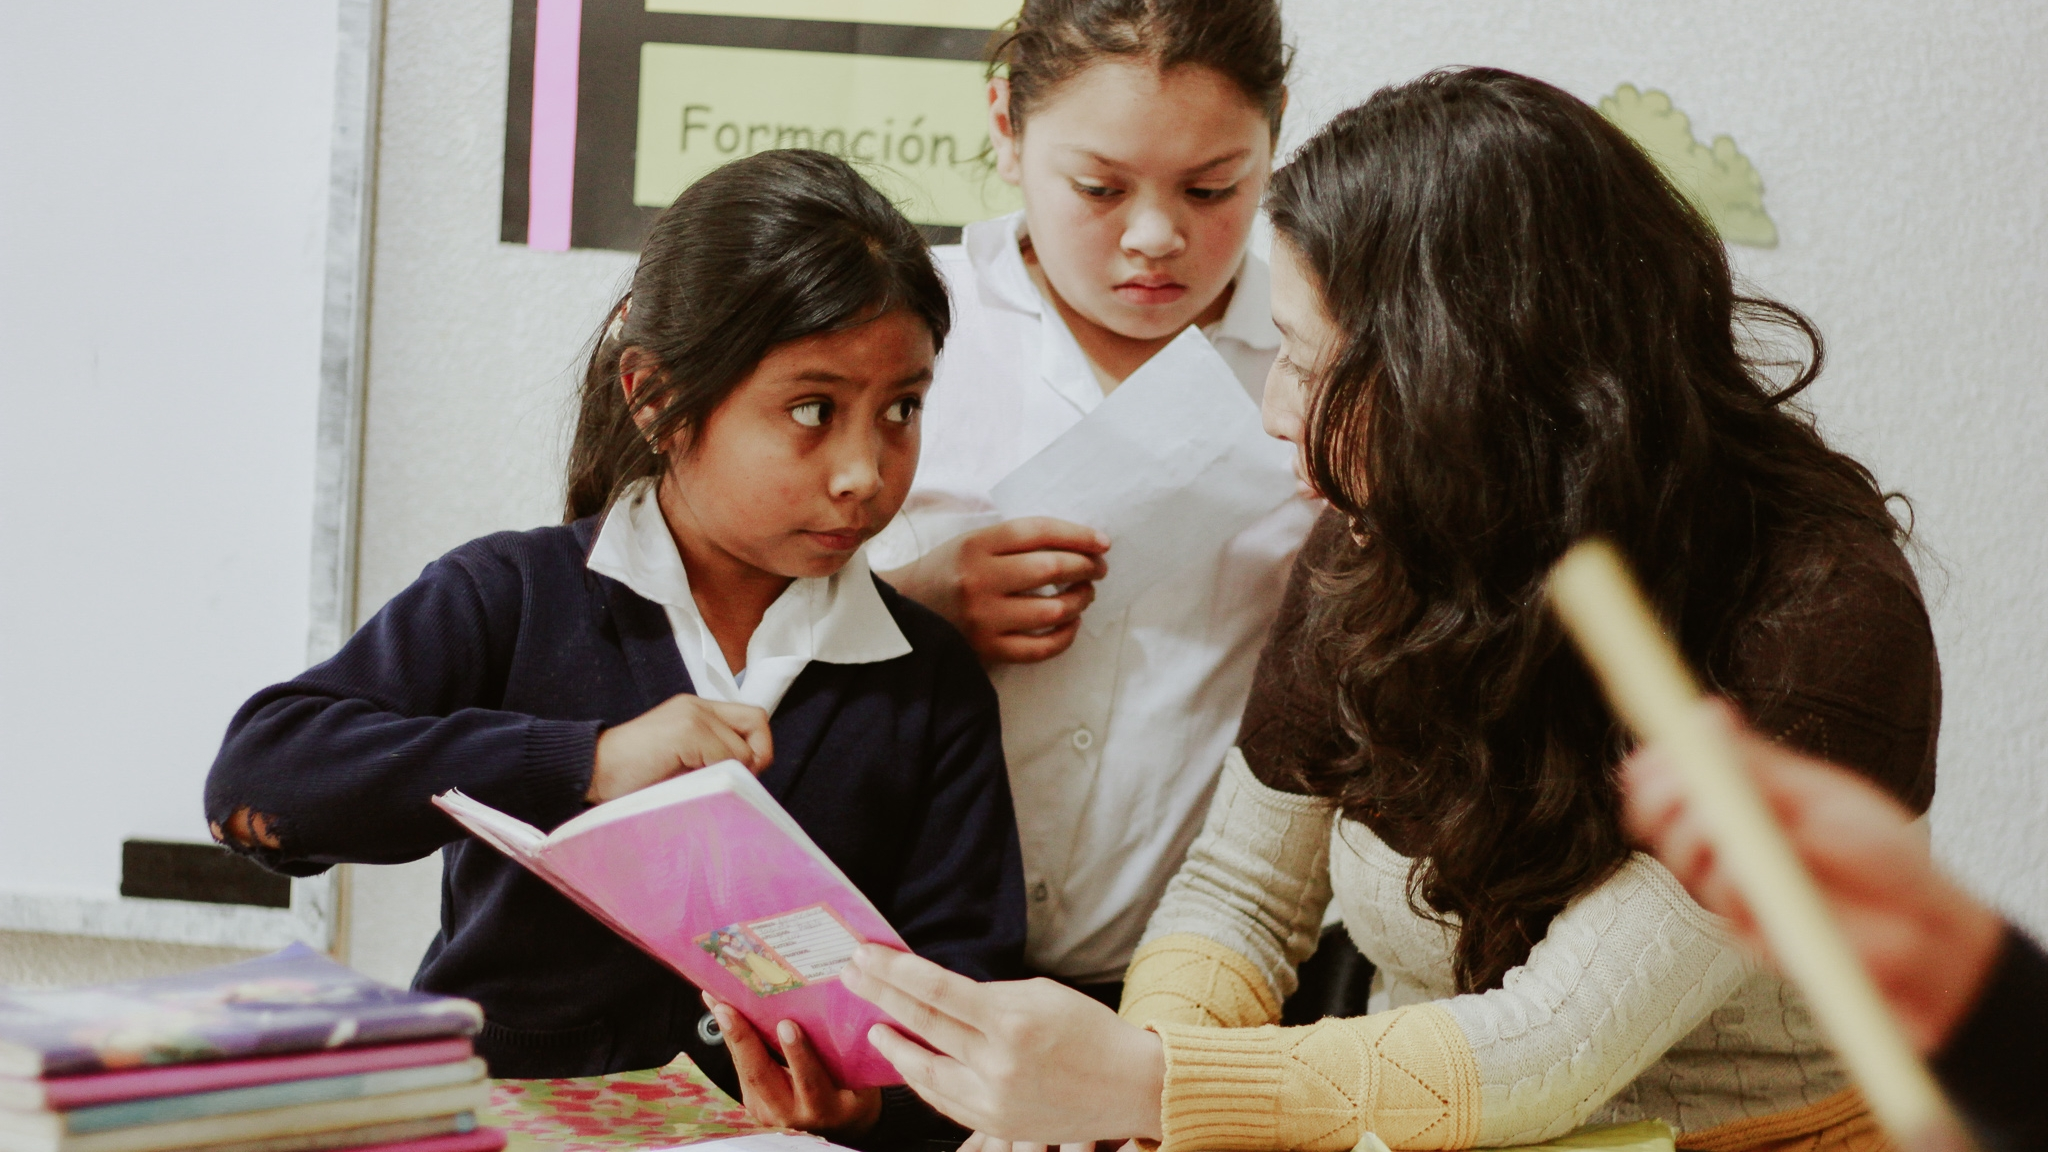 Sponsor a student - Your monthly sponsorship can provide a child with a quality education